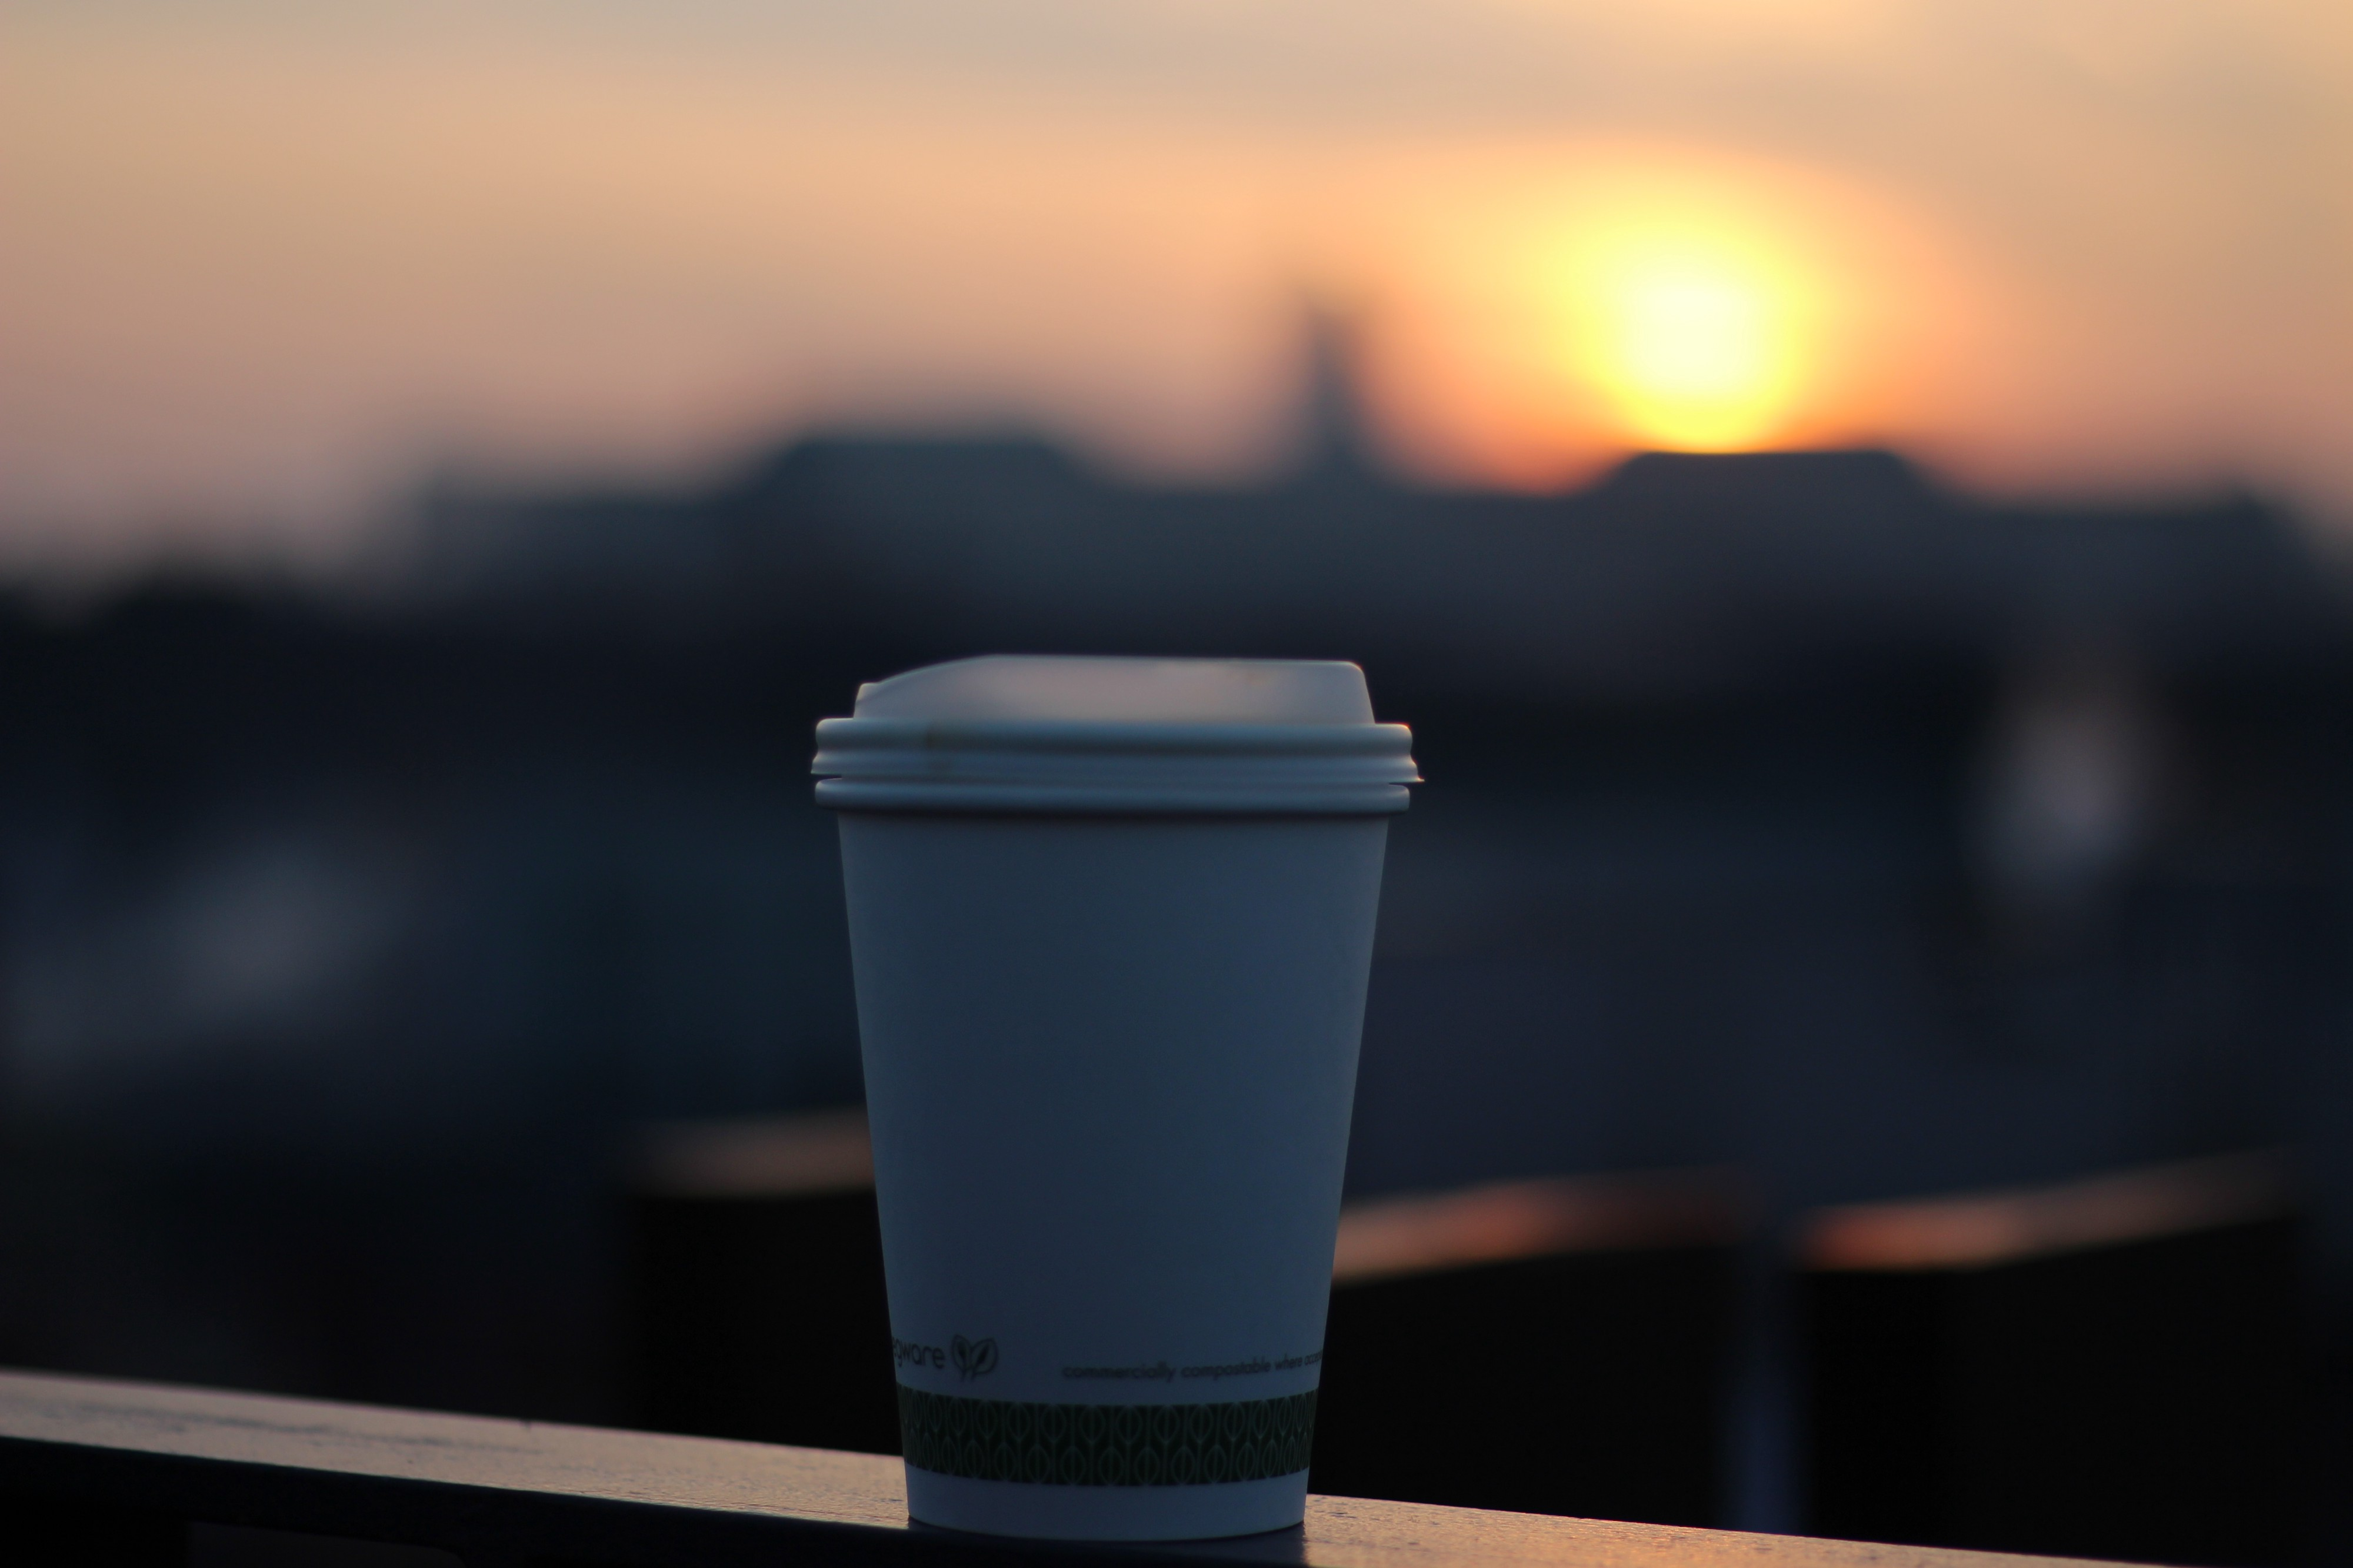 A reusable coffee cup on a ledge with the sun setting over a city in the background